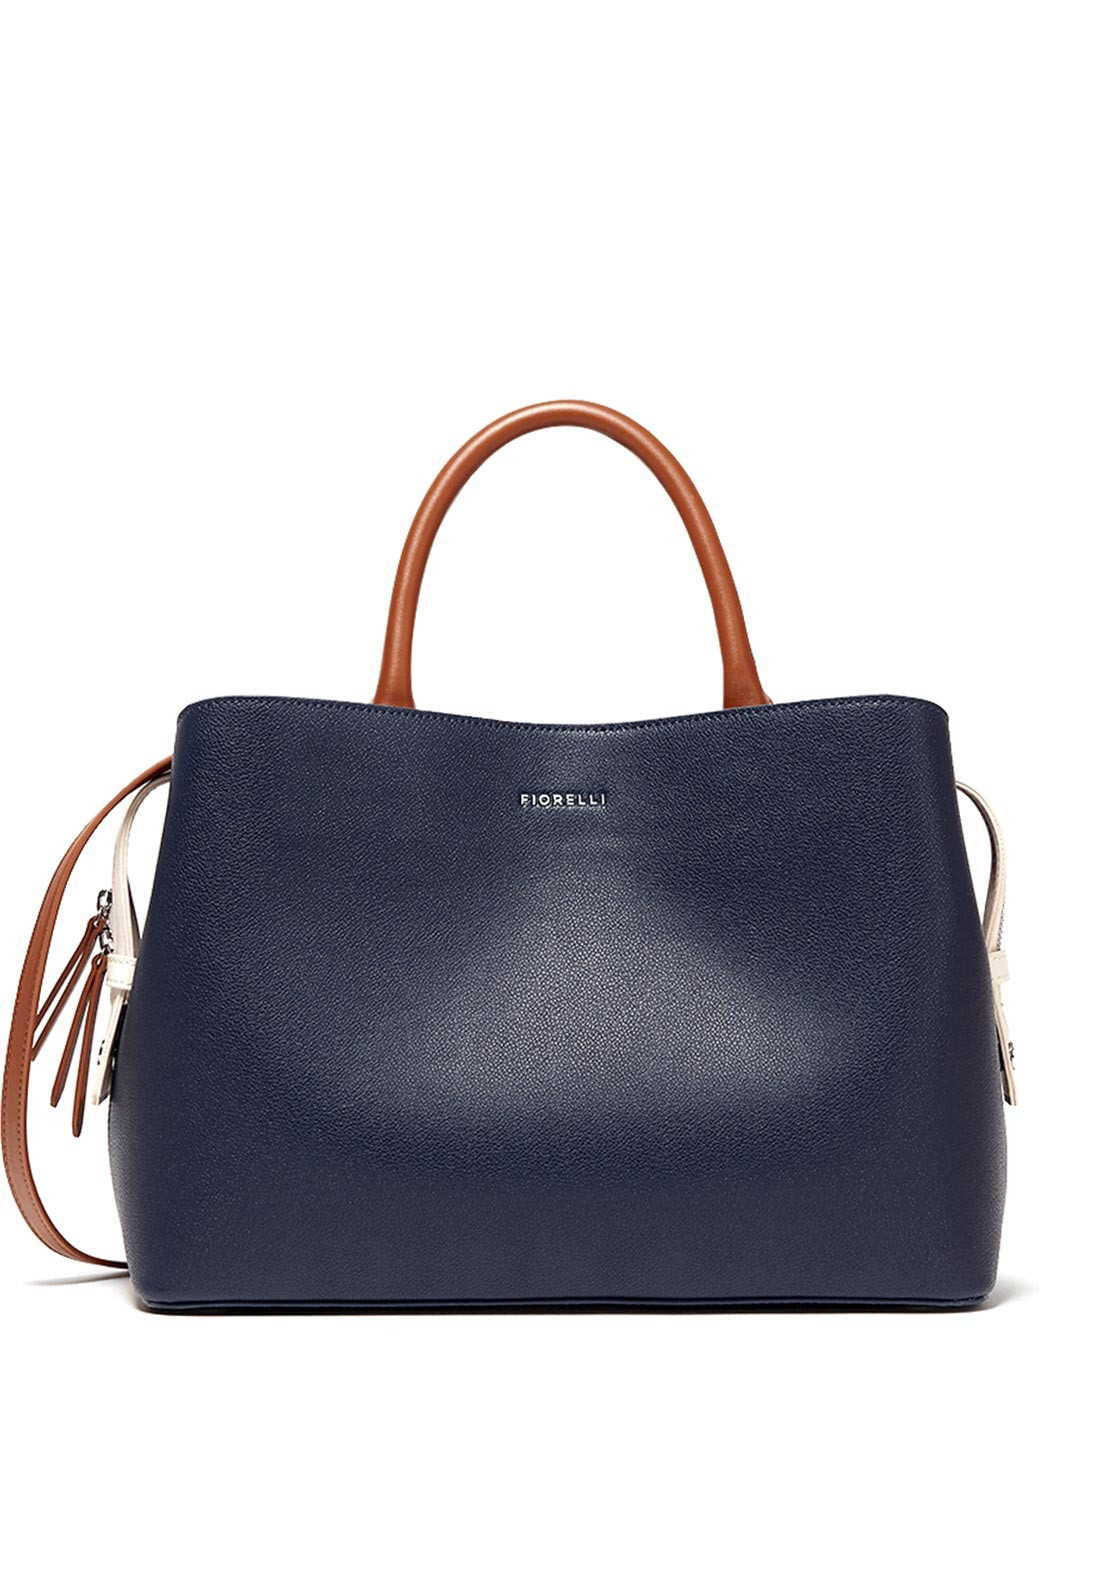 c509afda2e45 Fiorelli Bethnal Triple Compartment Grab Bag, Nautical. Be the first to  review this product